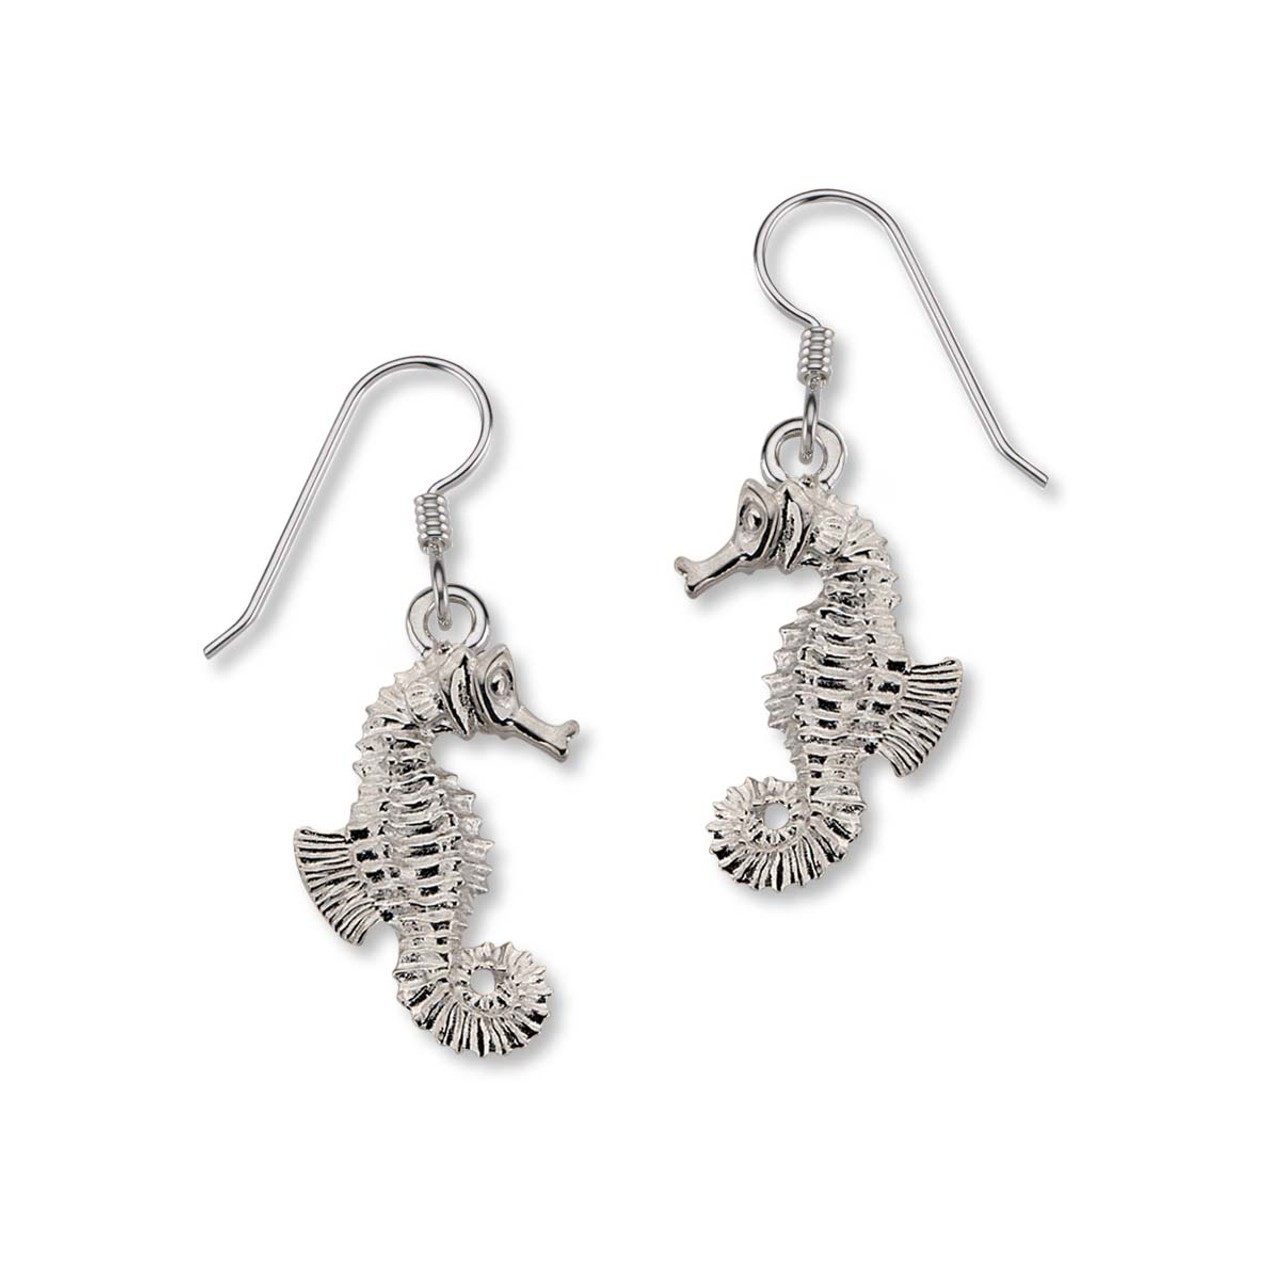 046e41b92 Browse Stylish Designs of Sterling Silver Seahorse Earrings